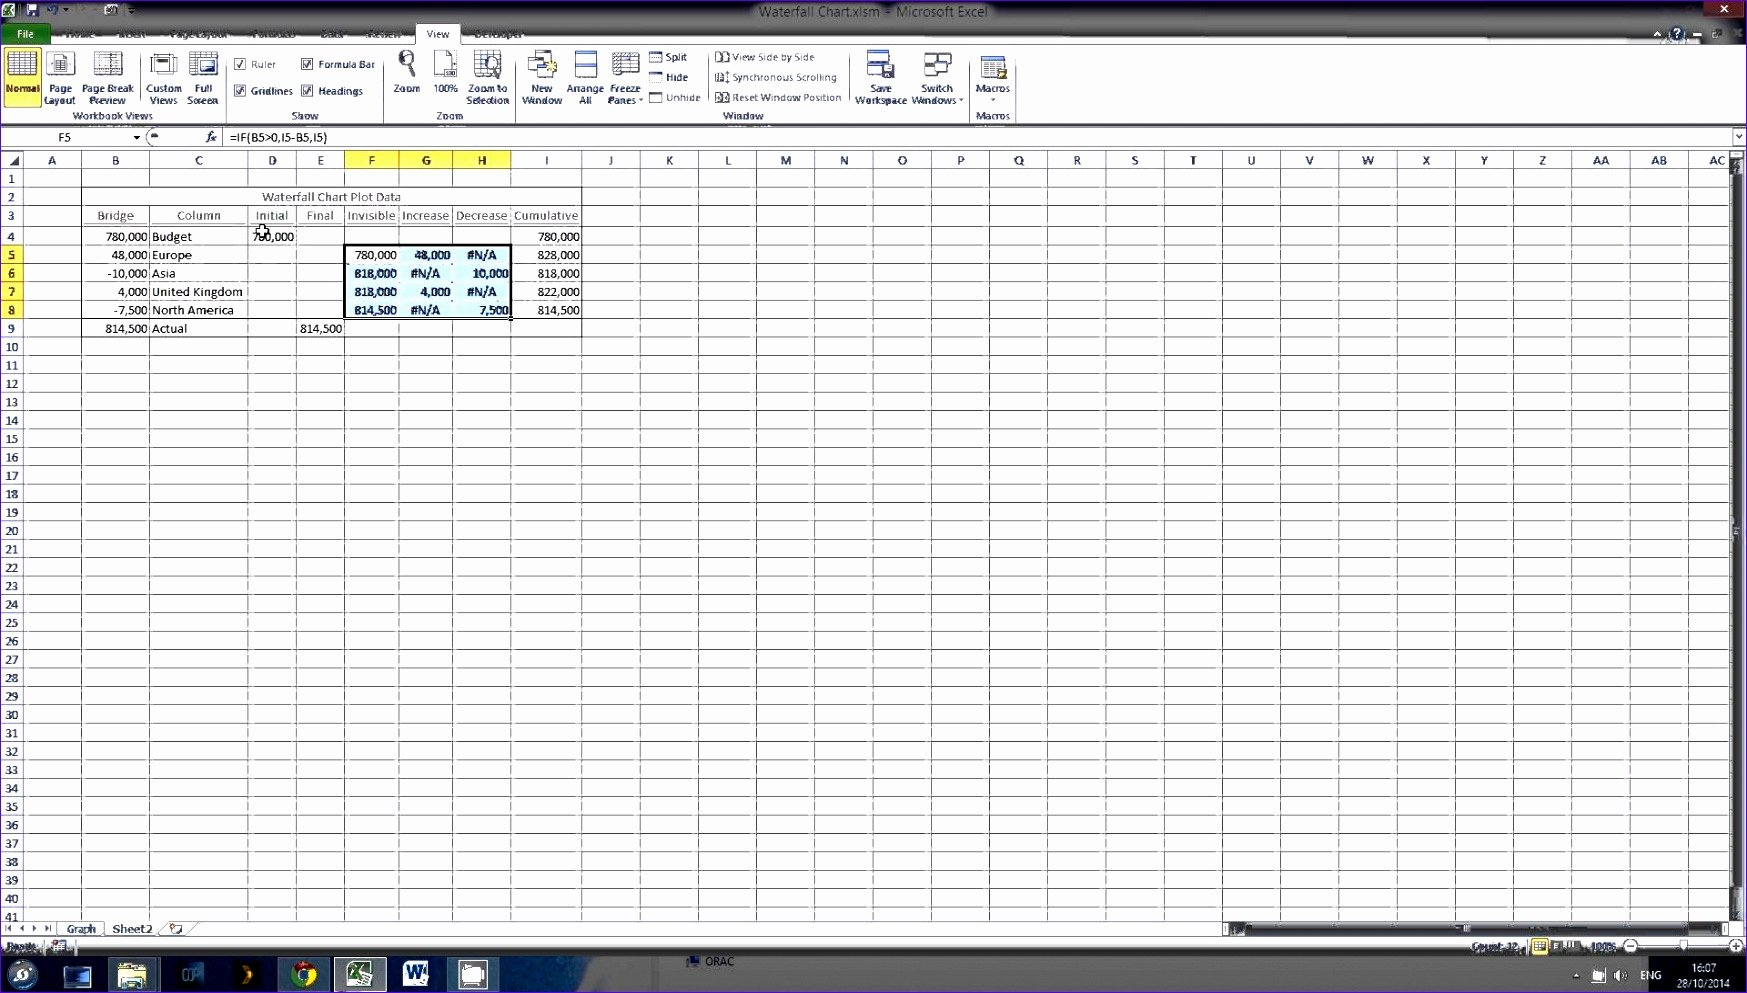 Waterfall Chart Excel Template Inspirational 6 Excel 2010 Waterfall Chart Template Exceltemplates